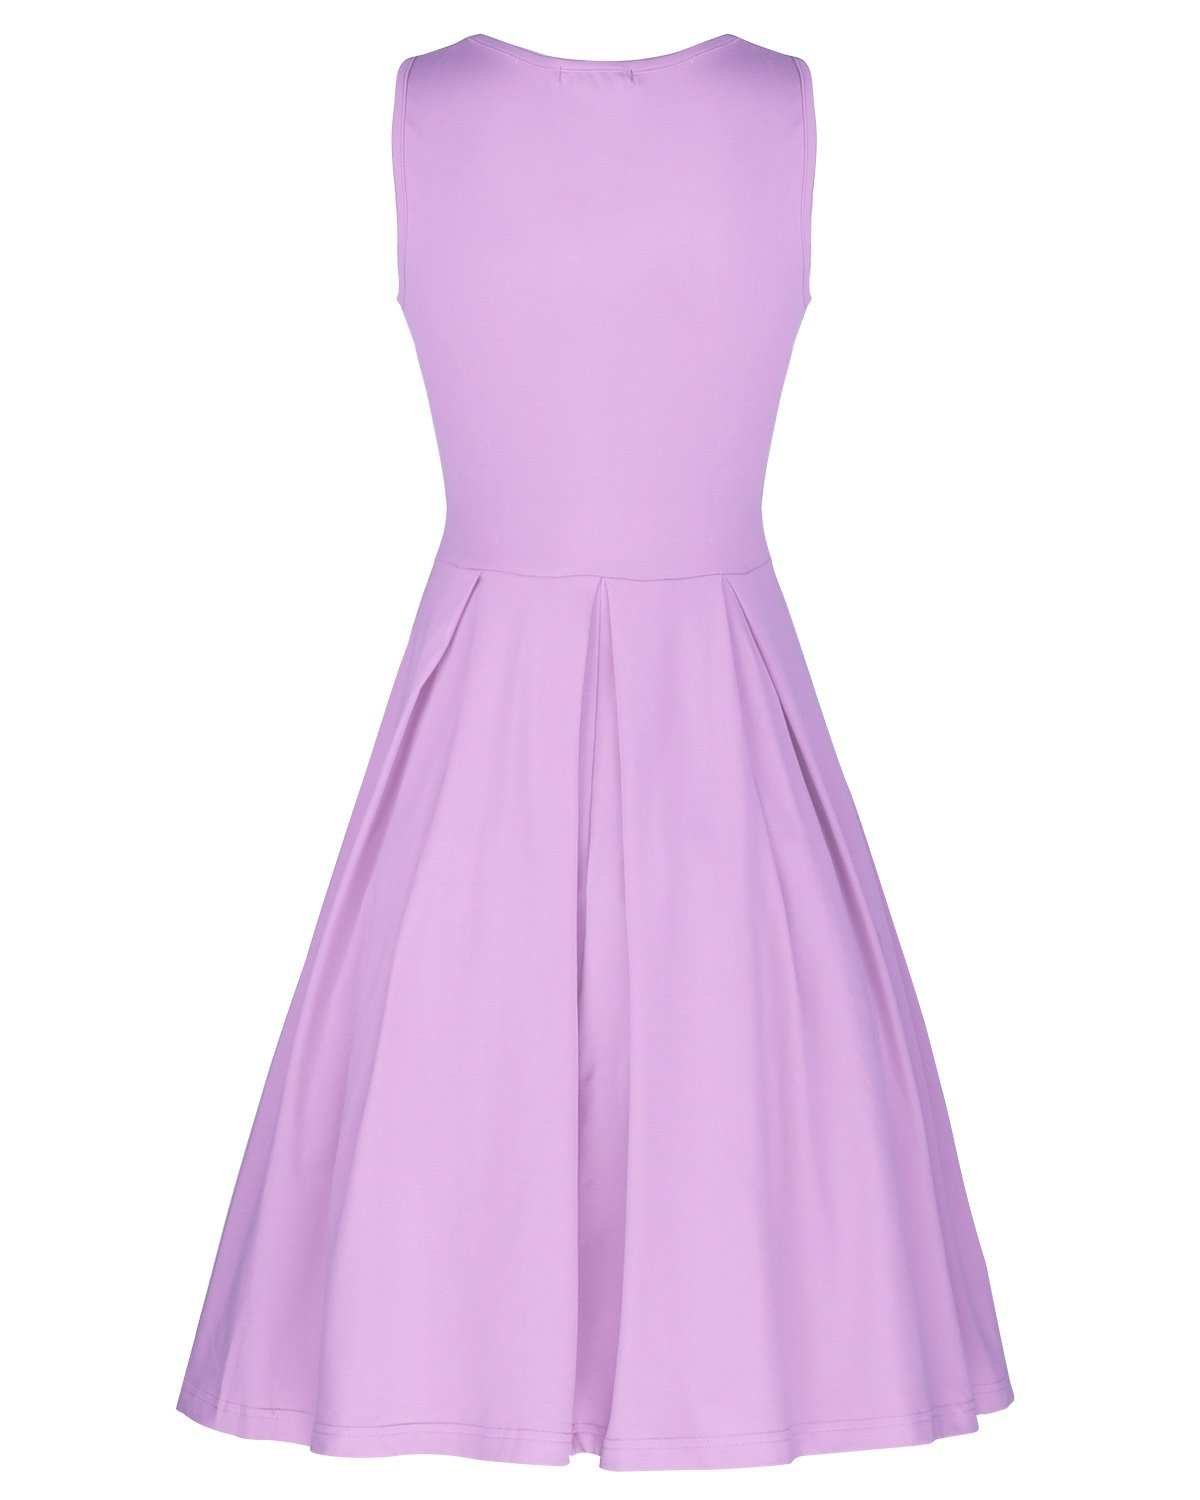 STYLEWORD Women's Sleeveless Casual Cotton Flare Dress(Lavender,L) by STYLEWORD (Image #3)